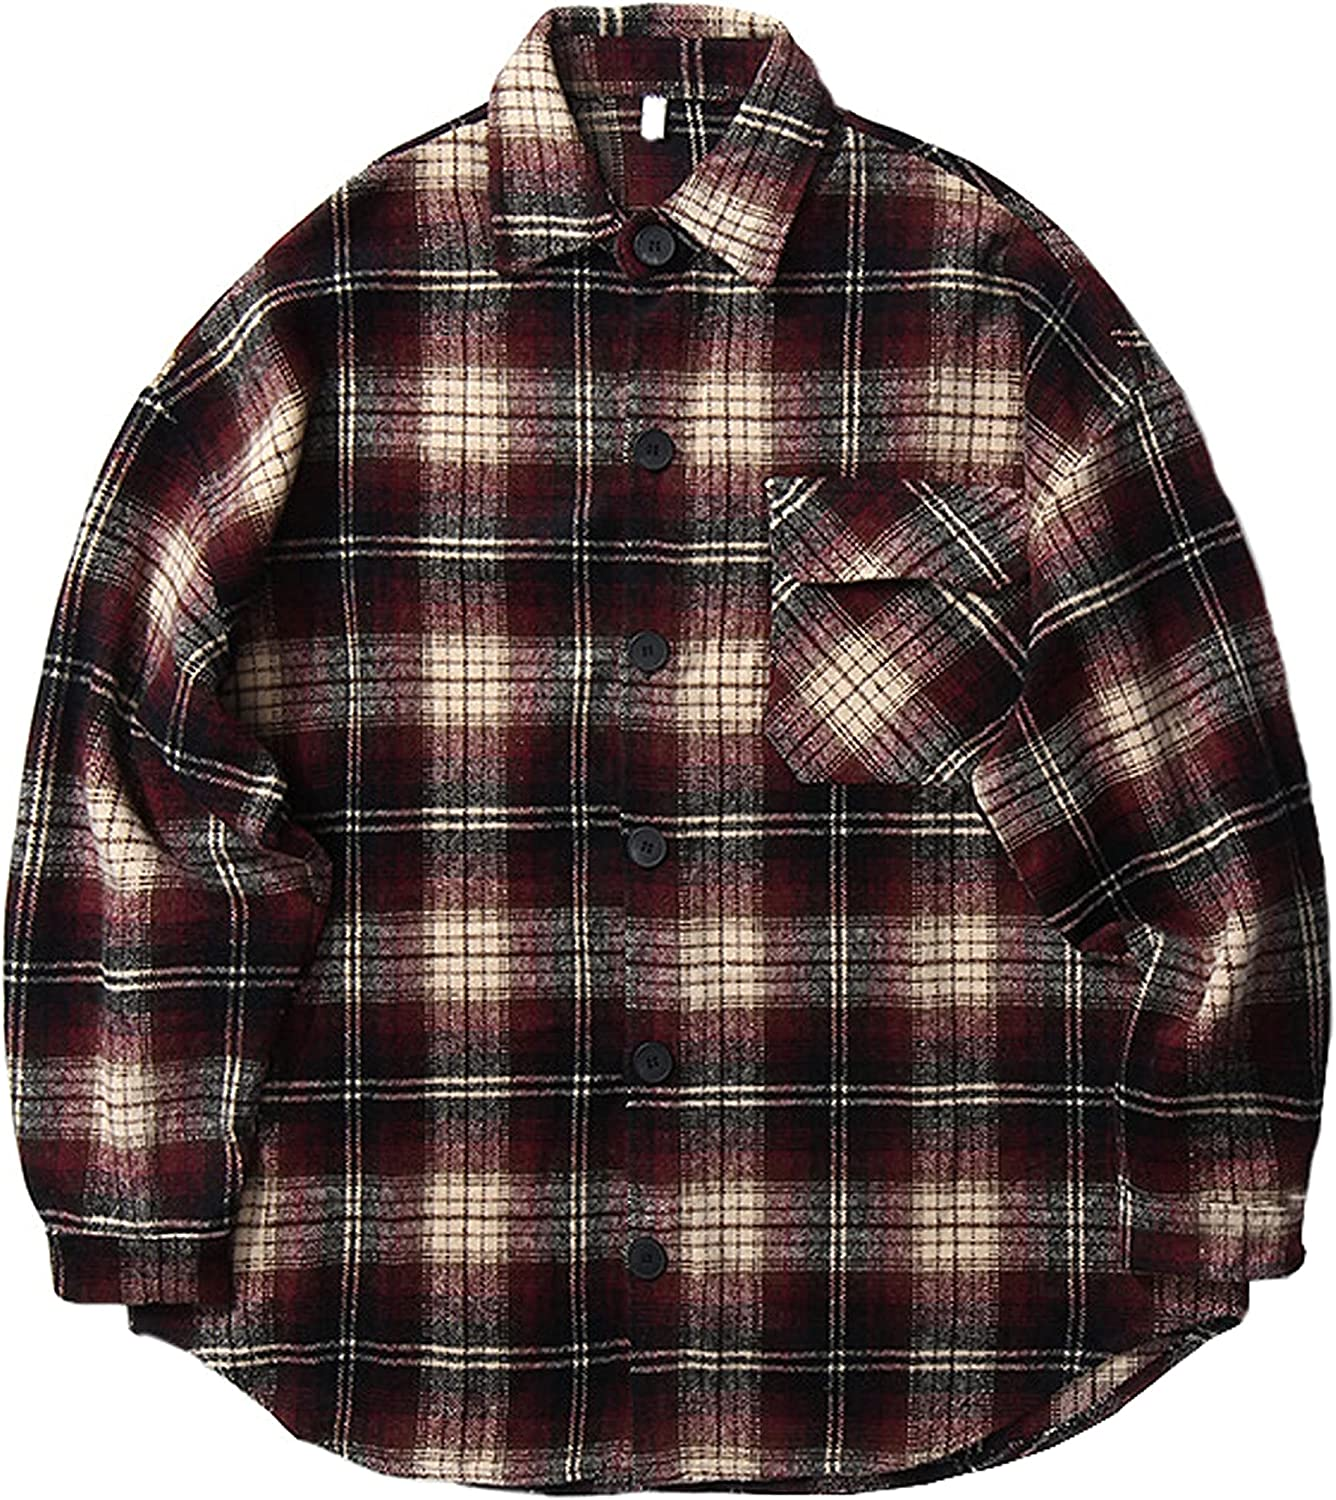 Tanming Men's Retro Washed Flannel Jacket Plaid Lapel Lo Fort Worth Mall Max 54% OFF Shacket